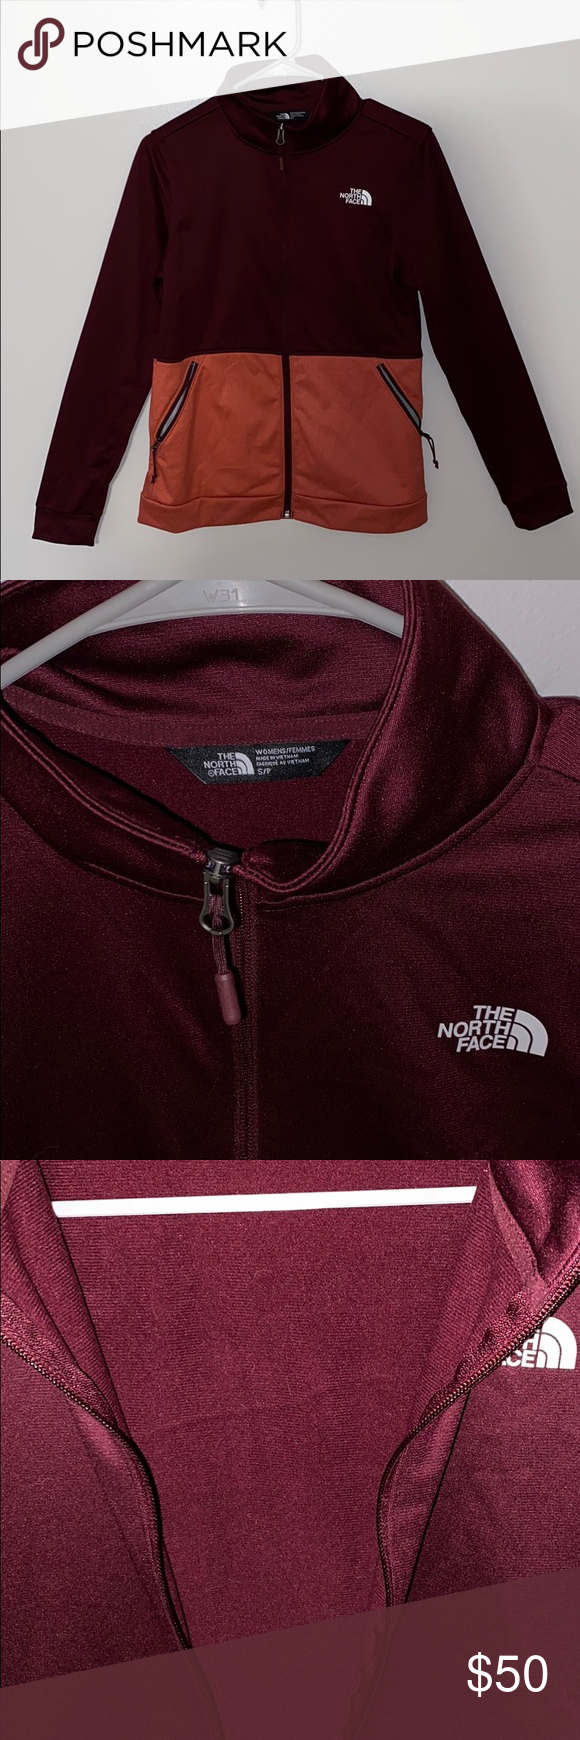 The North Face Zip Up Light Fleece Jacket This Is A New Without Tags Never Worn Or Washed North Face Light Jacket Smoo Light Fleece Light Jacket Fleece Jacket [ 1740 x 580 Pixel ]